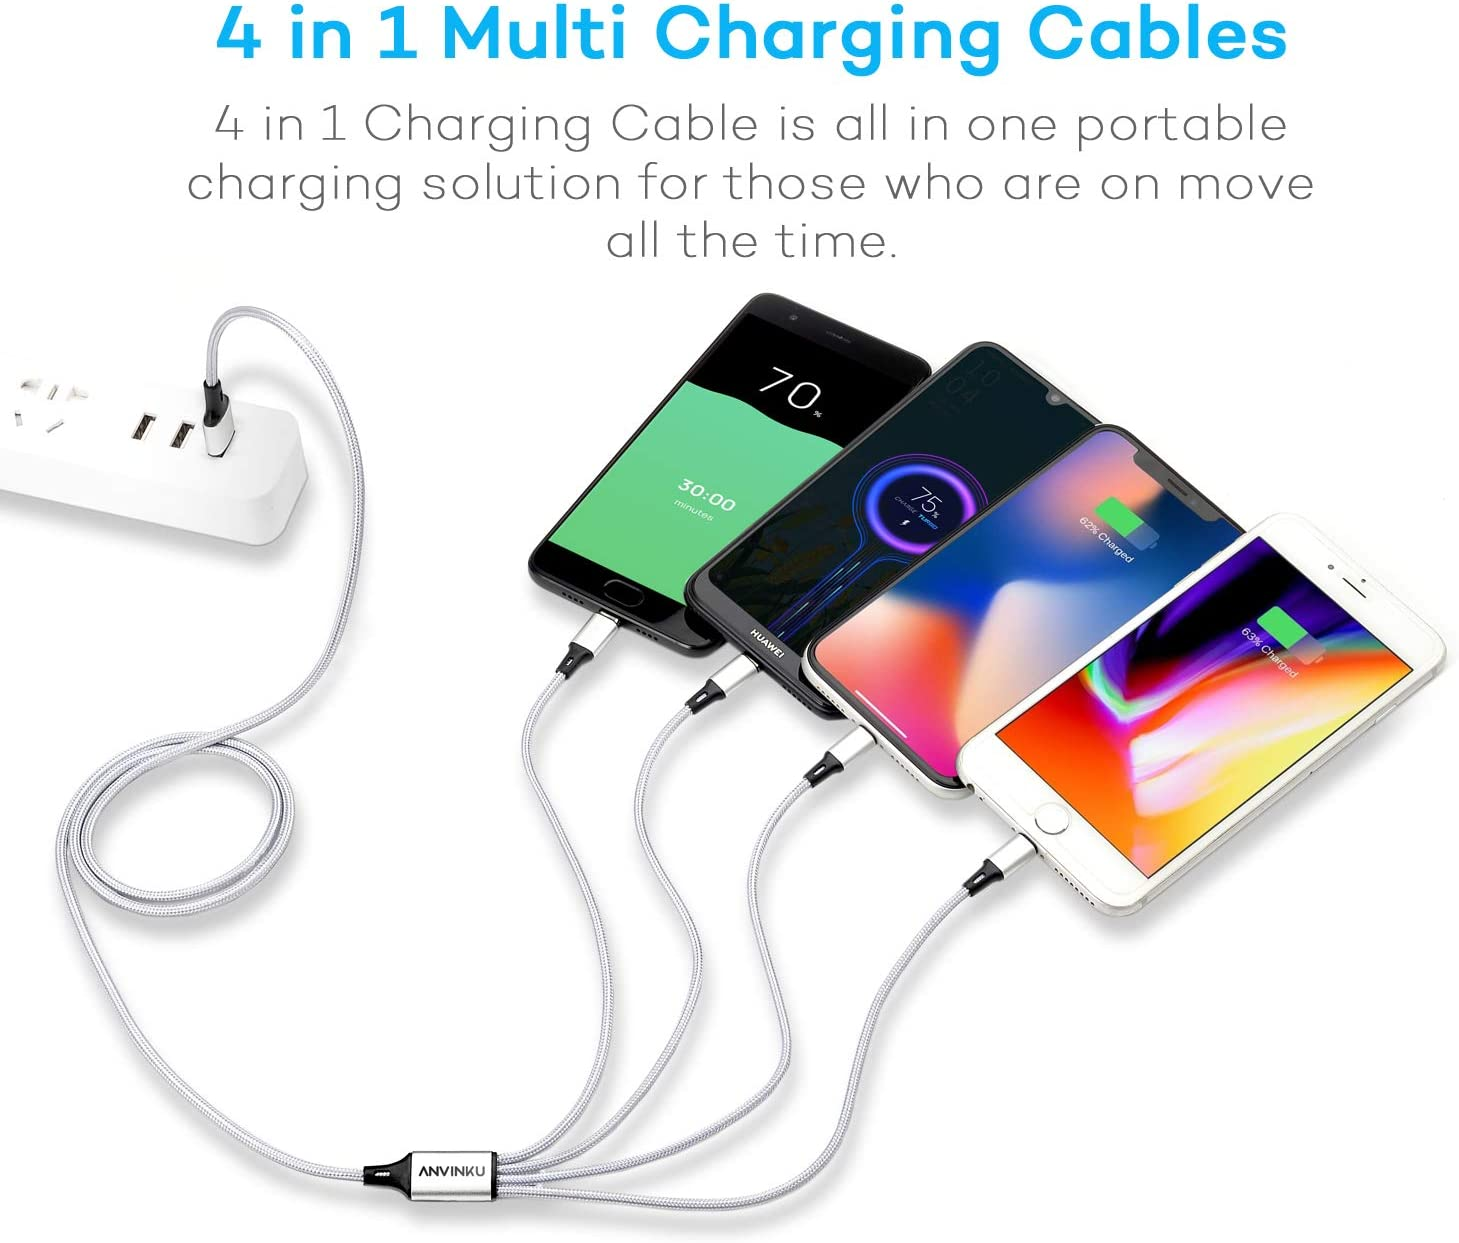 Multi Charging Cable Portable 3 in 1 Pattern Hearts USB Cable USB Power Cords for Cell Phone Tablets and More Devices Charging